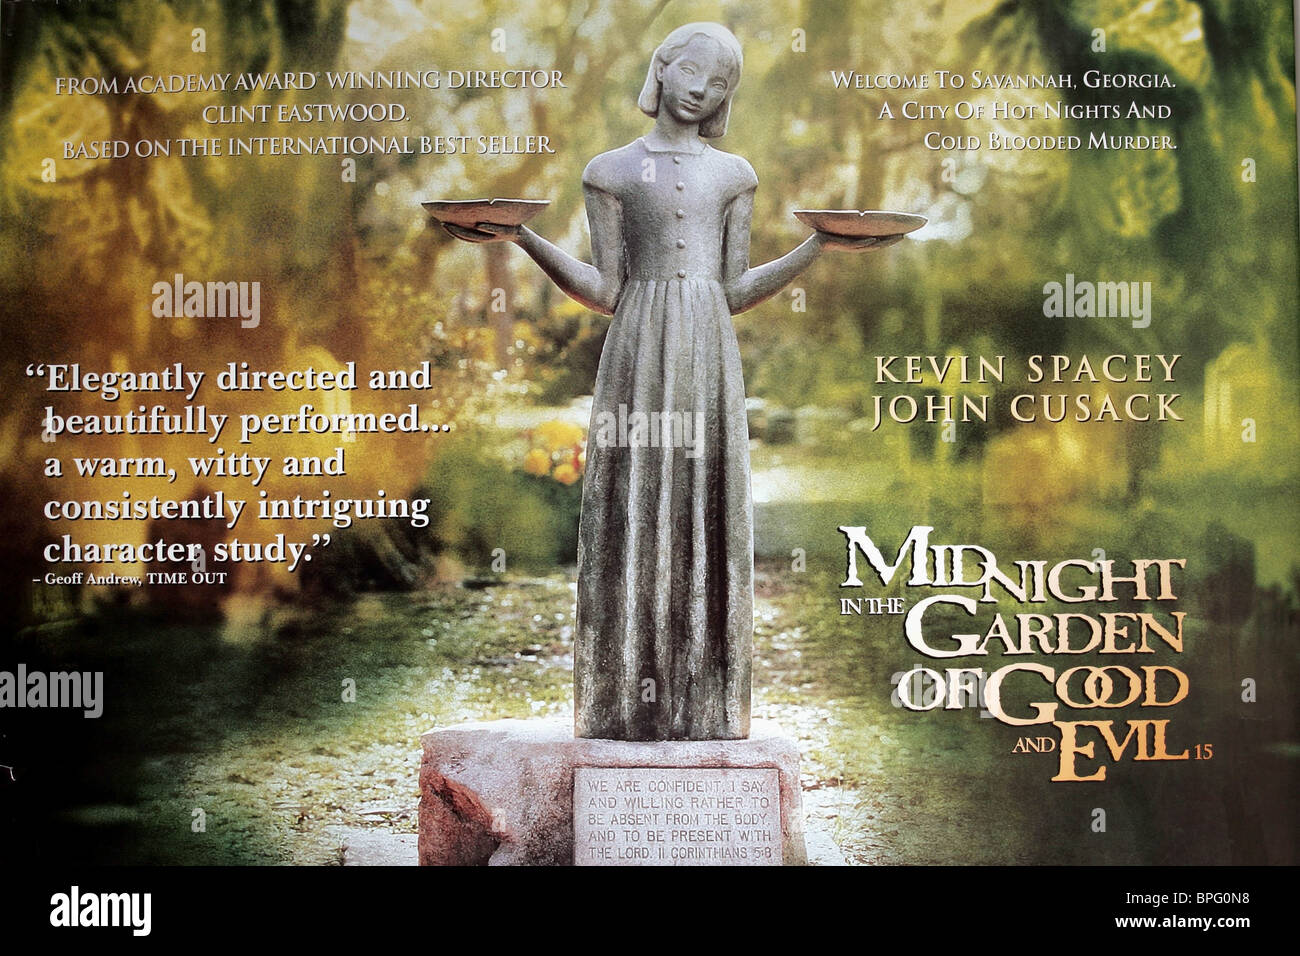 Film Poster Midnight In The Garden Of Good And Evil 1997 Stock Photo Alamy